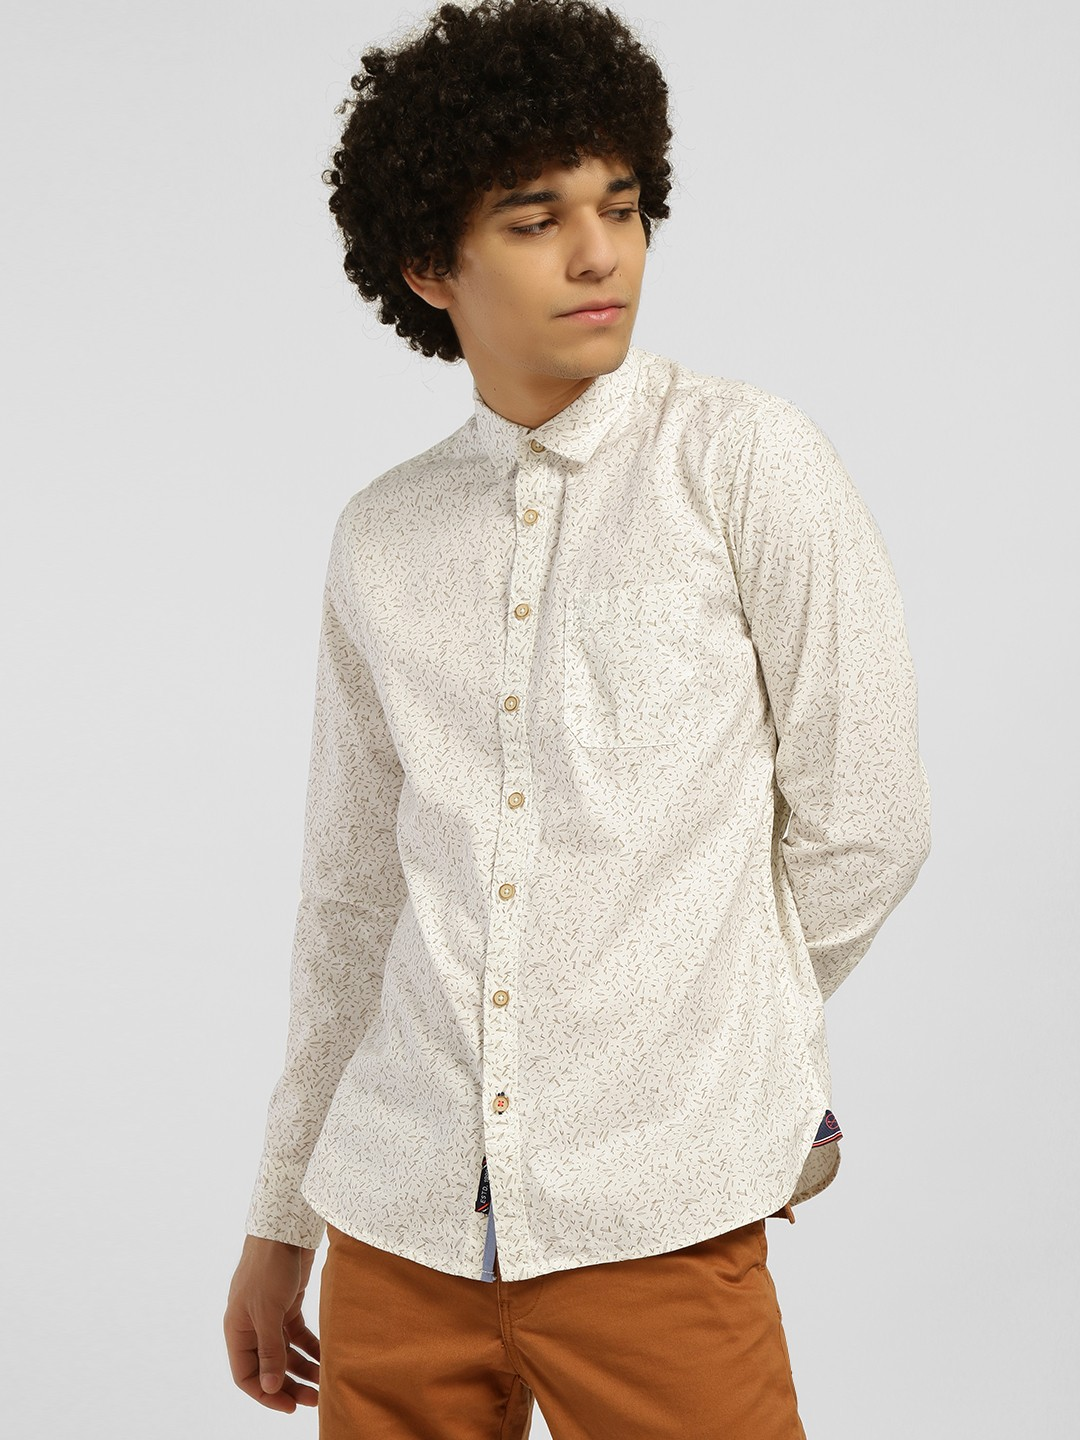 SCULLERS White Neo Nautical Print Casual Shirt 1